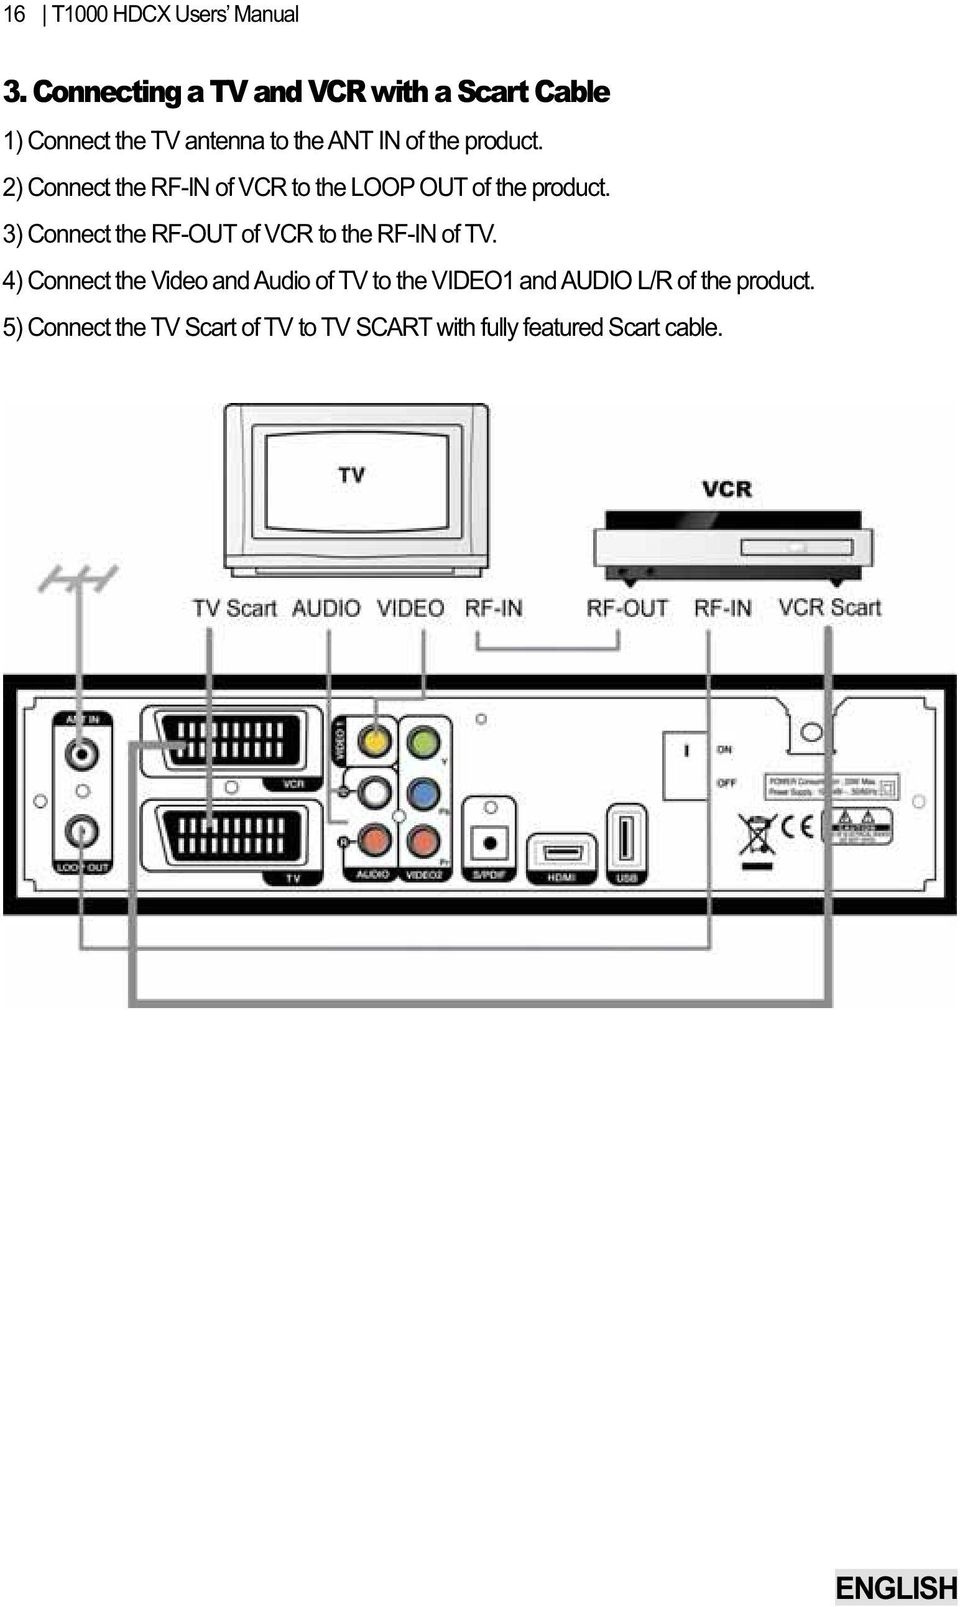 2) Connect the RF-IN of VCR to the LOOP OUT of the product.